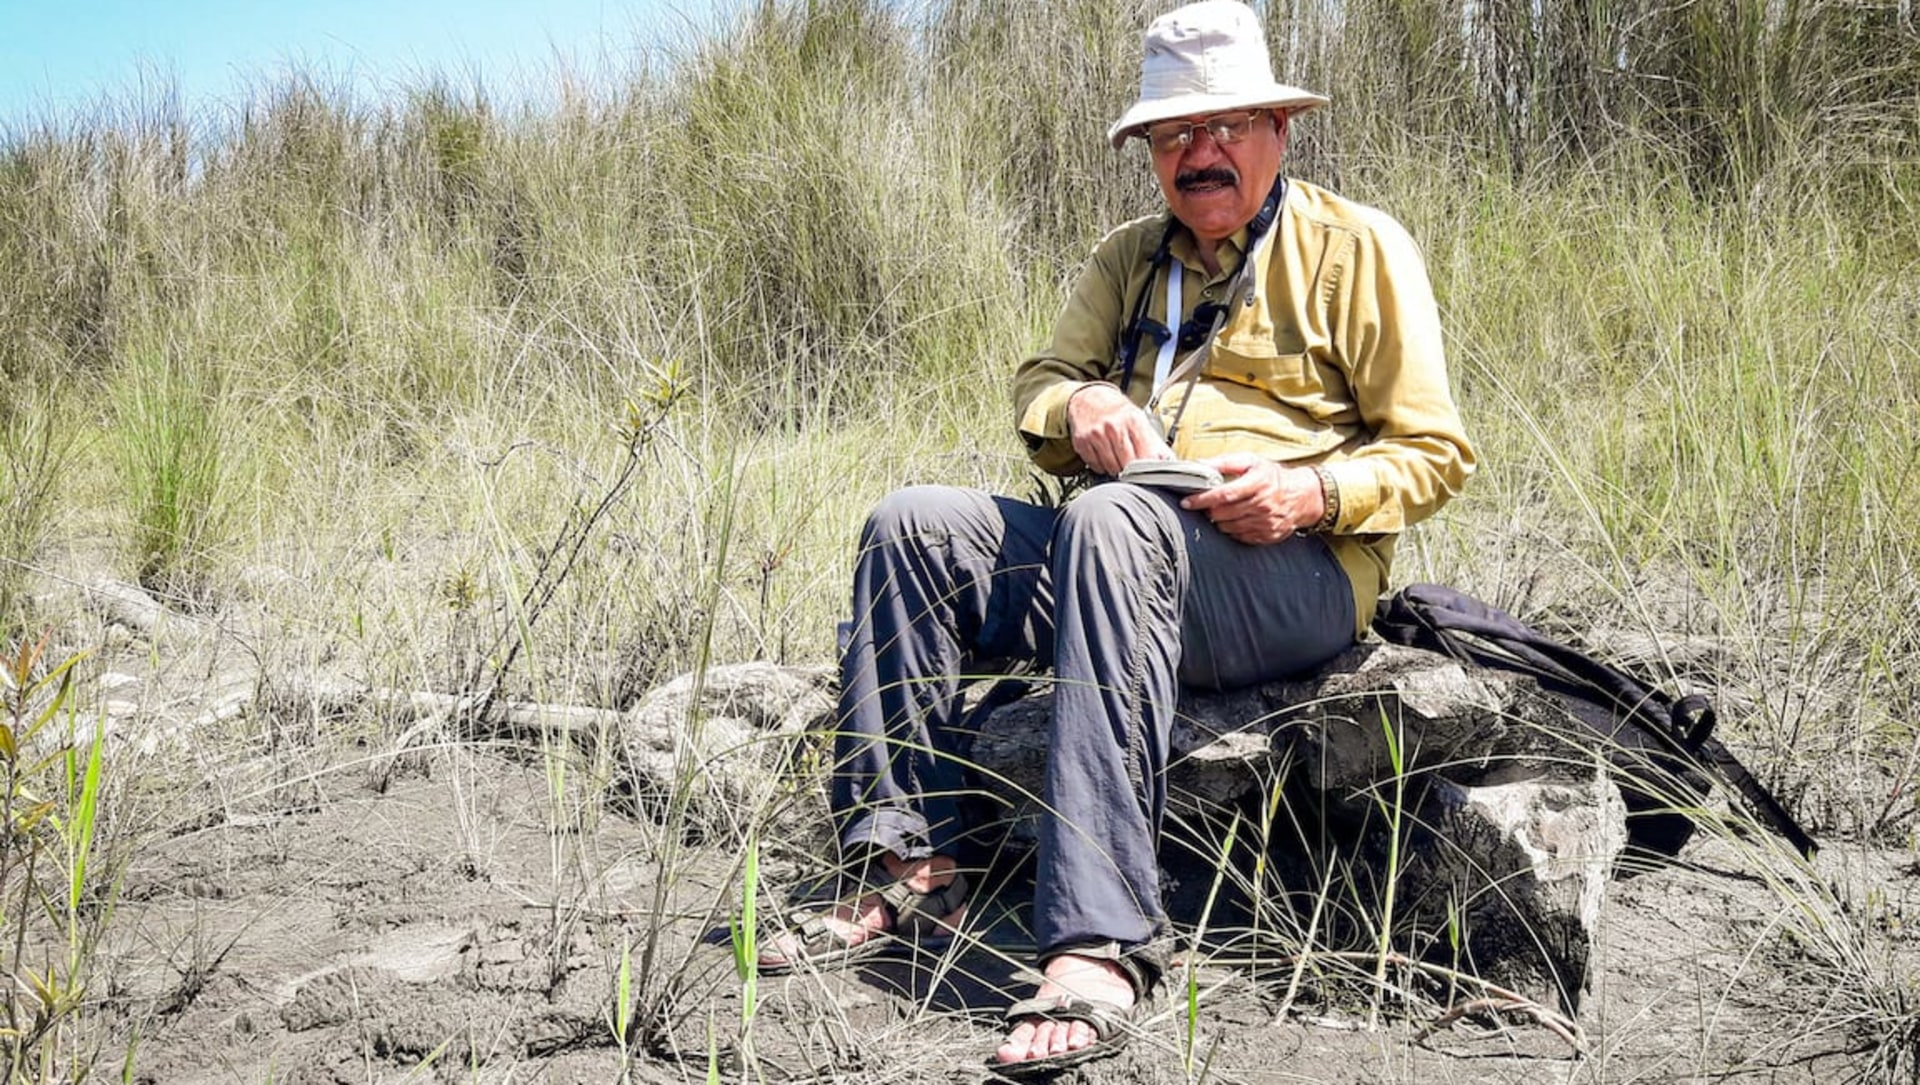 Asad Rahmani and his Five-decade Long 'Vacation' in Conservation